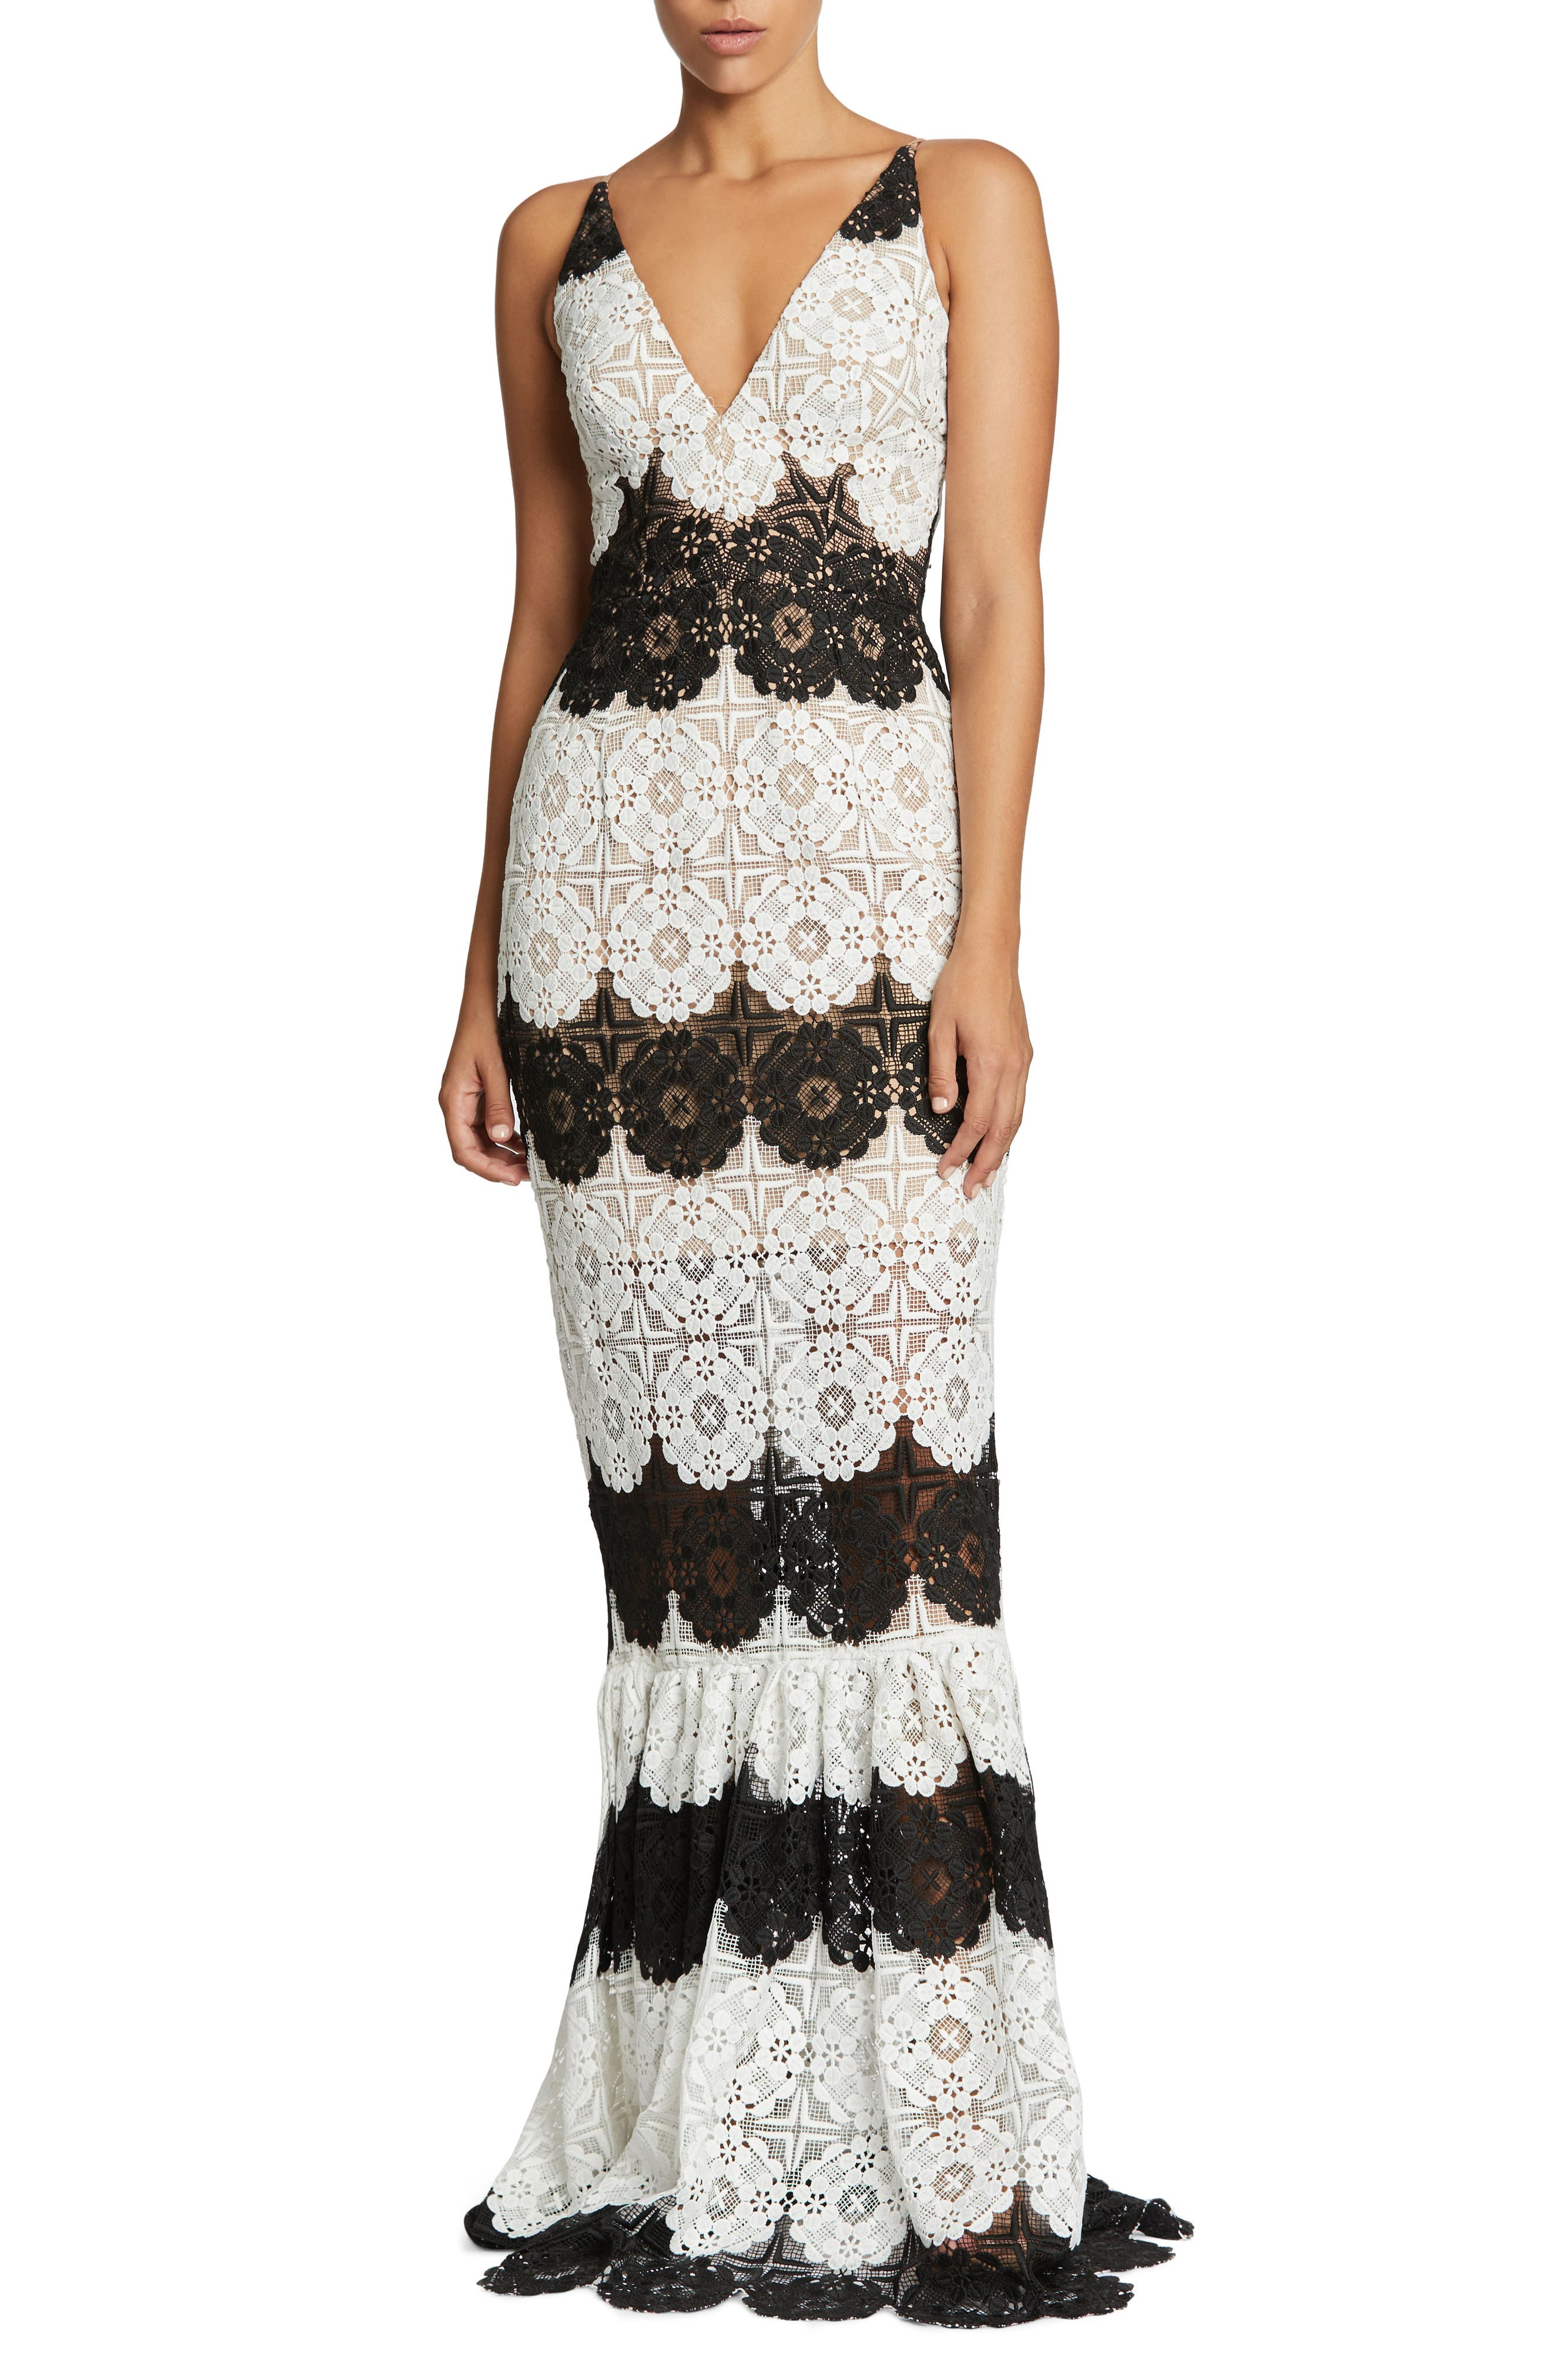 Candace Crochet Mermaid Gown,                         Main,                         color, White/ Black